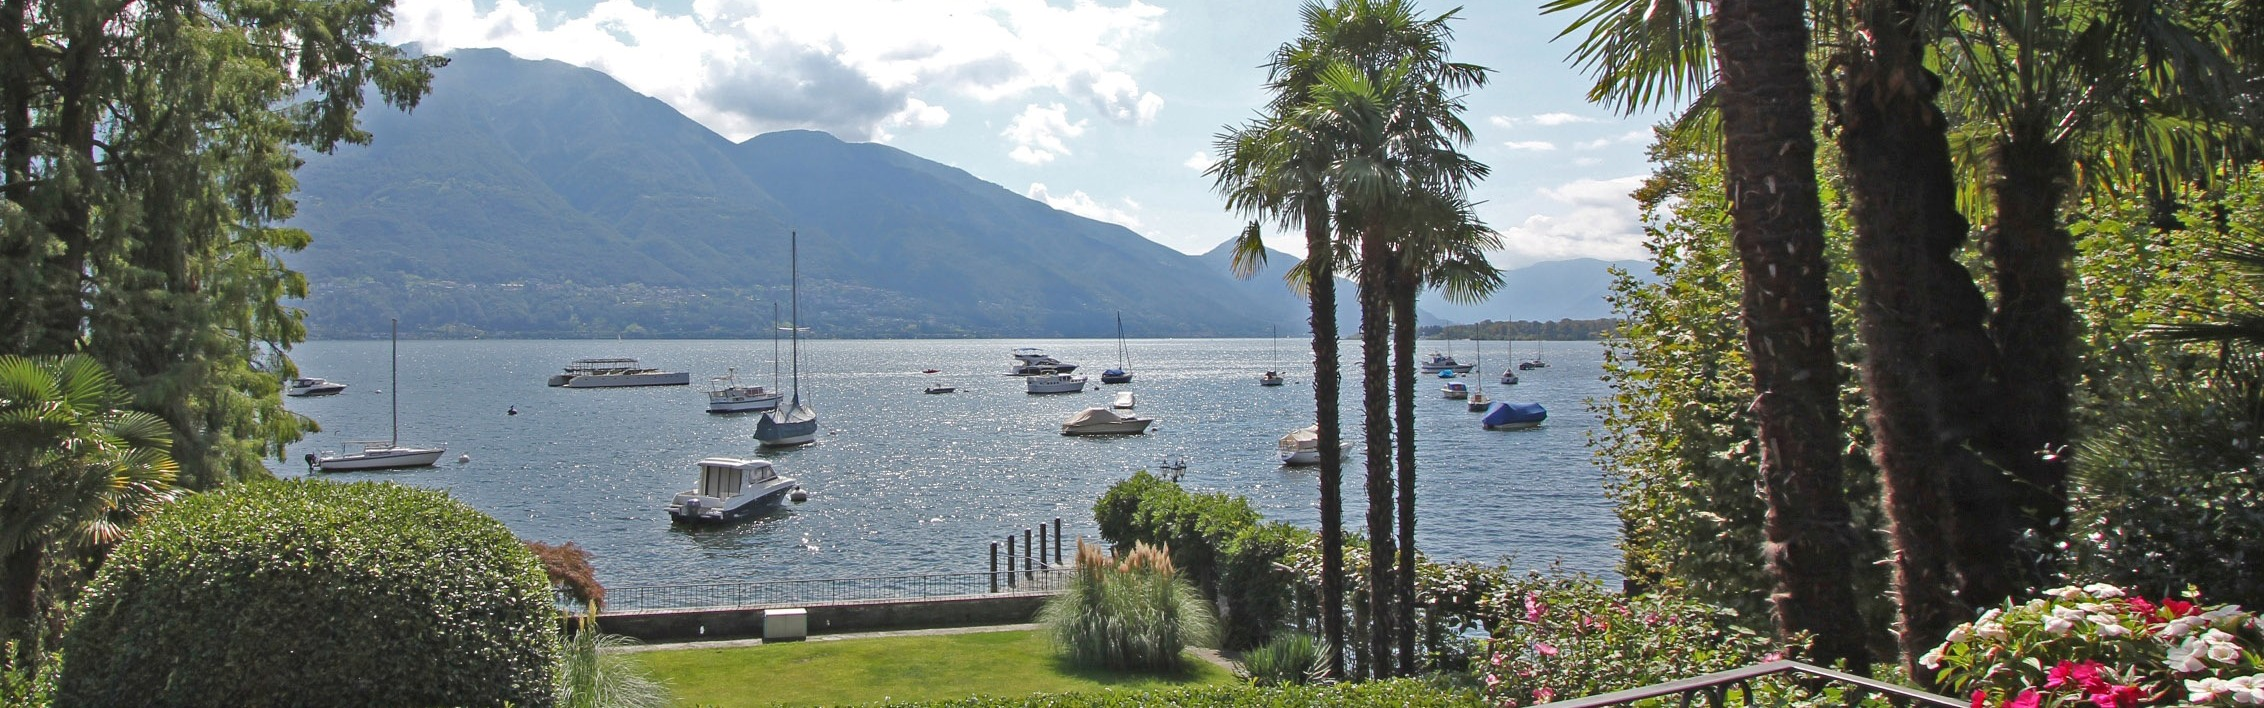 Immobilien in Ascona - SLIDER9.JPG